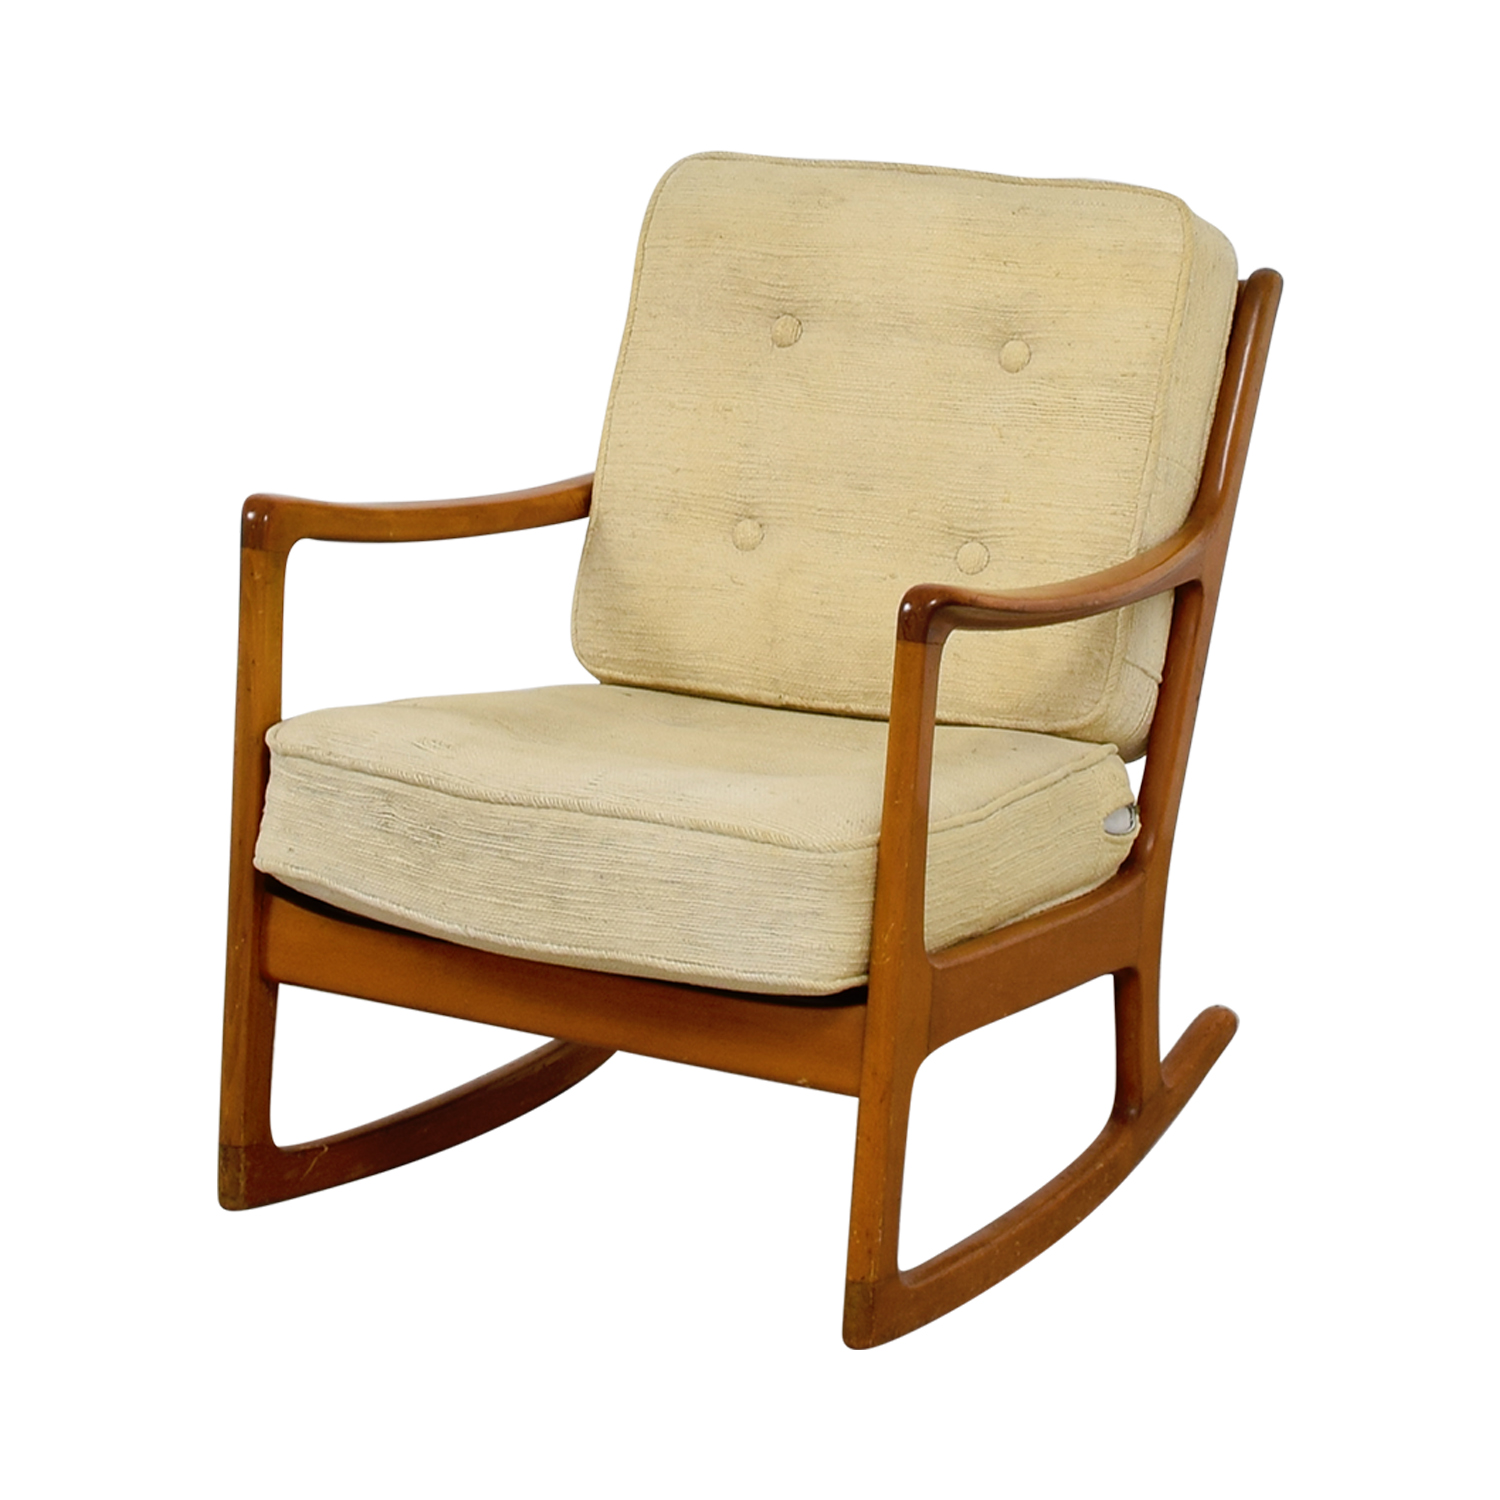 accent rocking chairs chair rentals columbia sc 68 off john stuart inc mid century